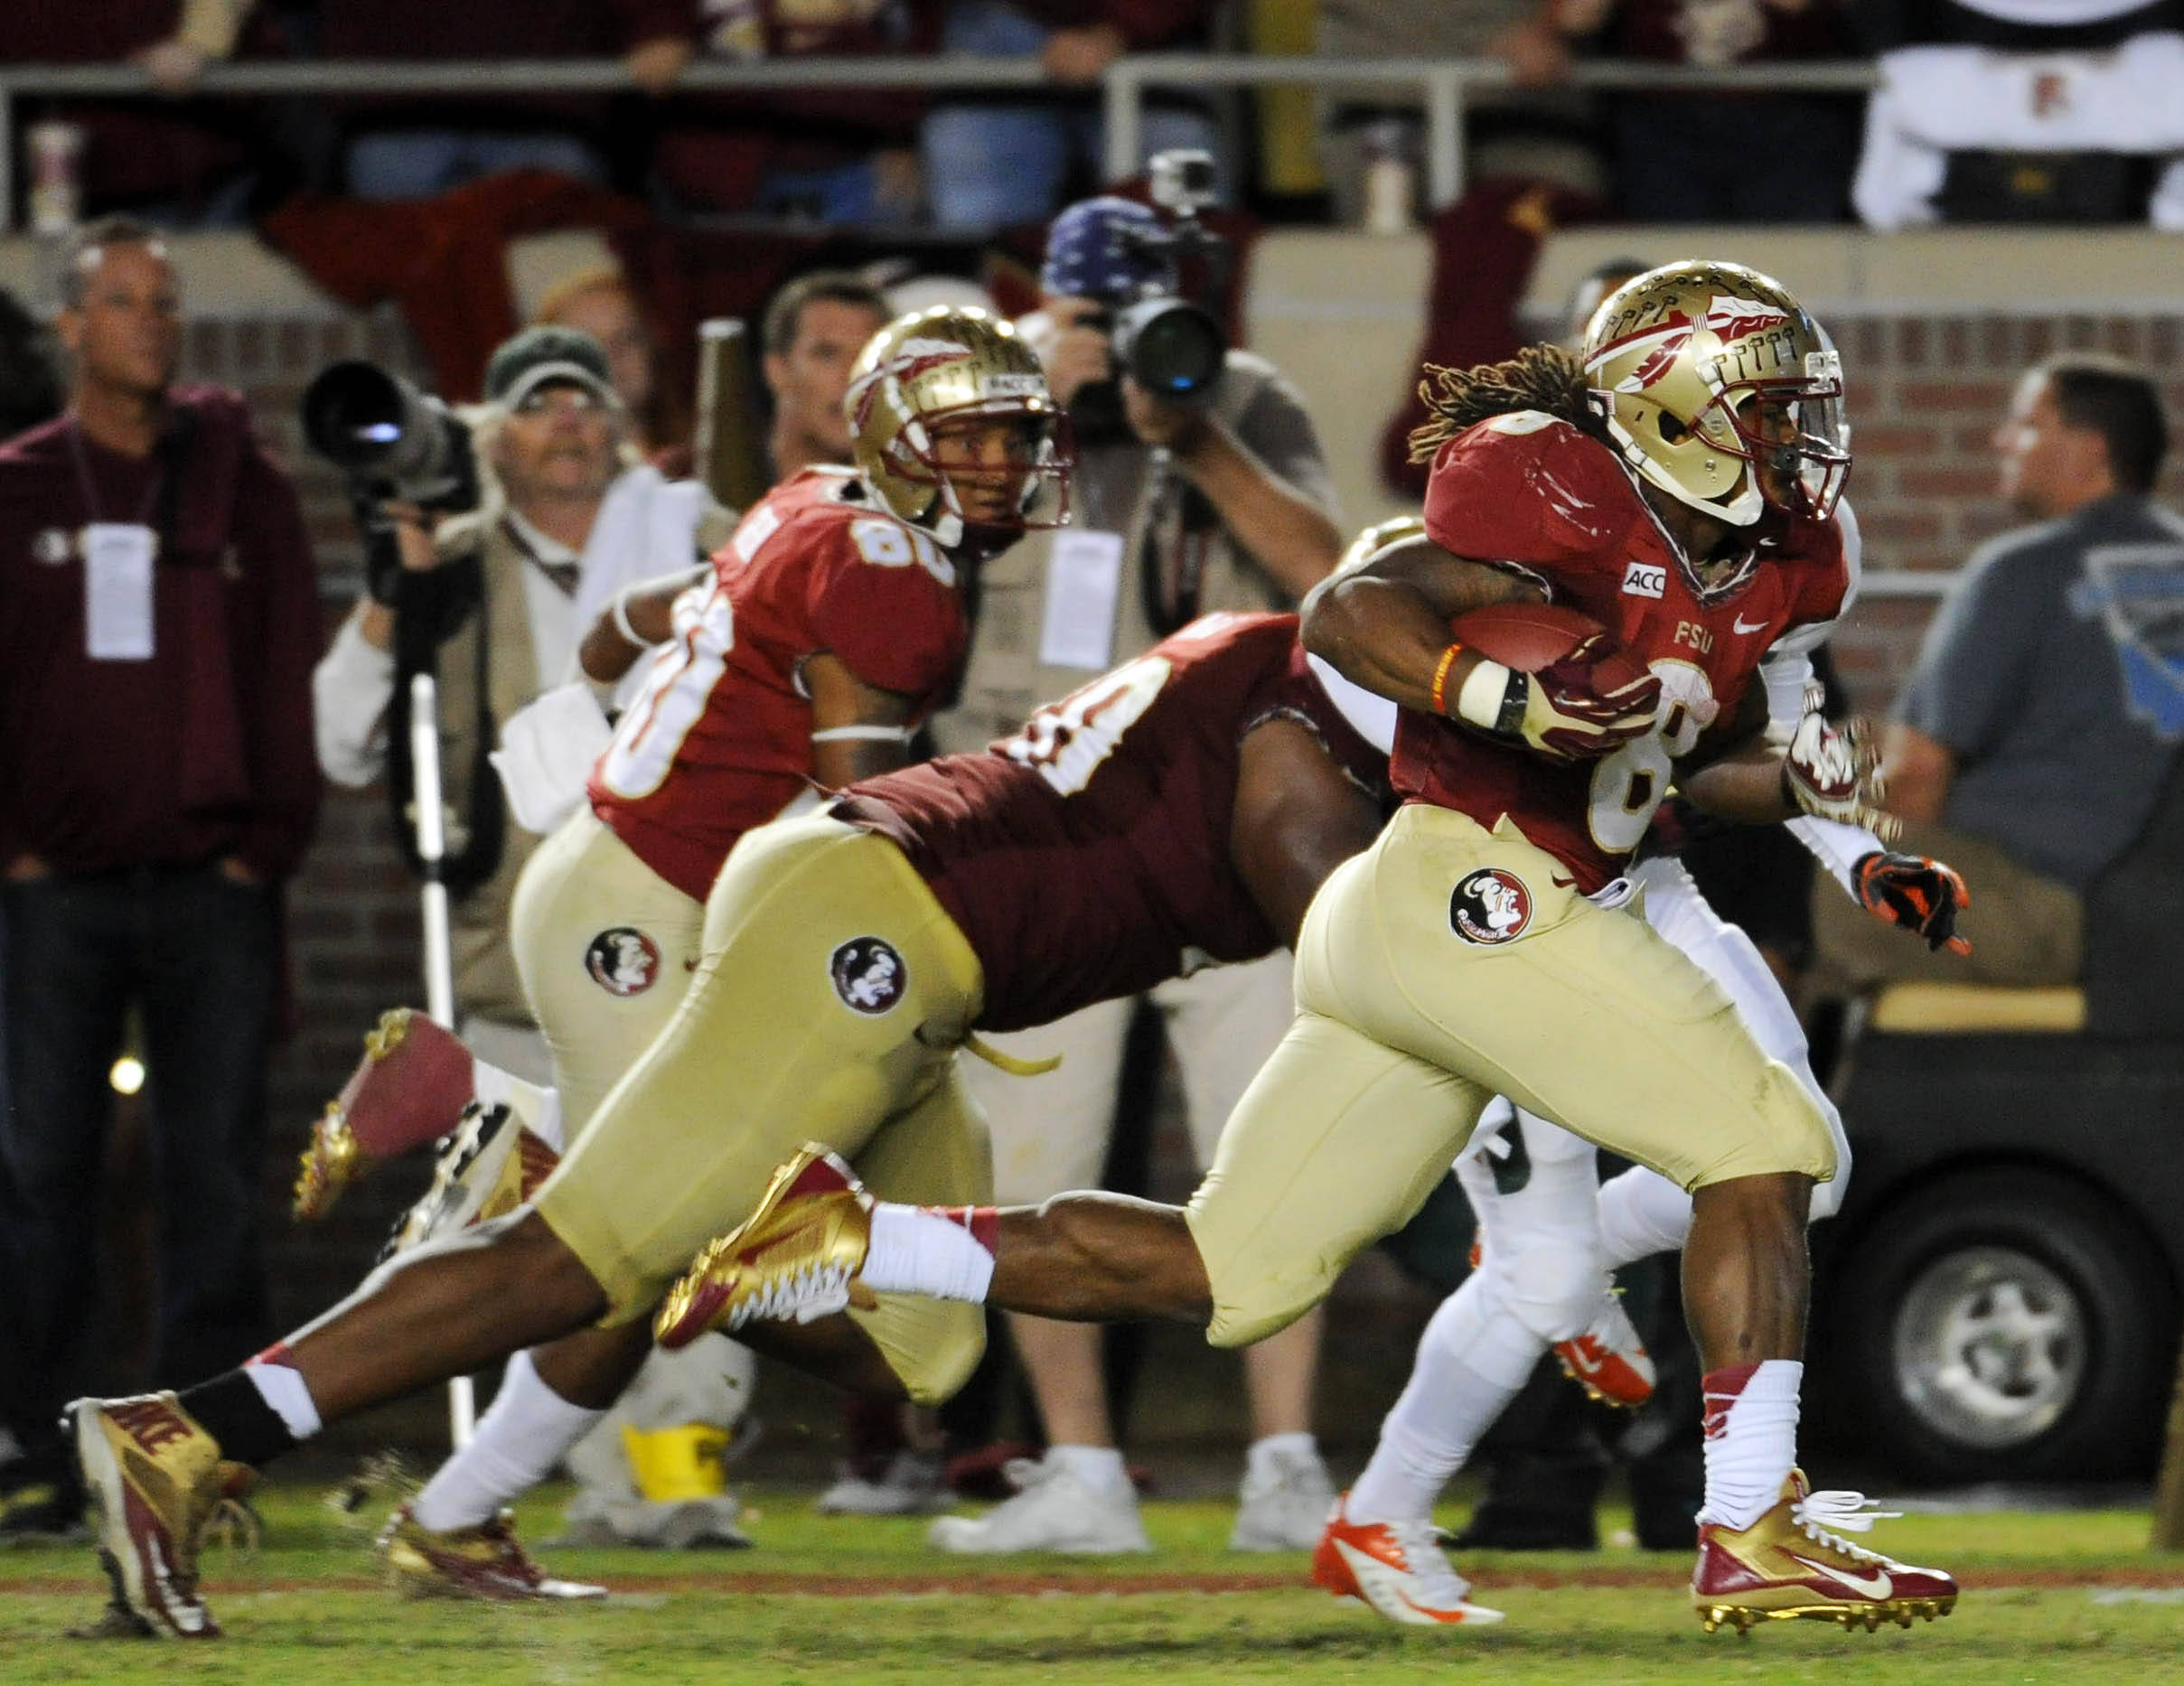 Florida State Seminoles running back Devonta Freeman (8) runs the ball for a touchdown against the Miami Hurricanes during the first half at Doak Campbell Stadium. Mandatory Credit: Melina Vastola-USA TODAY Sports